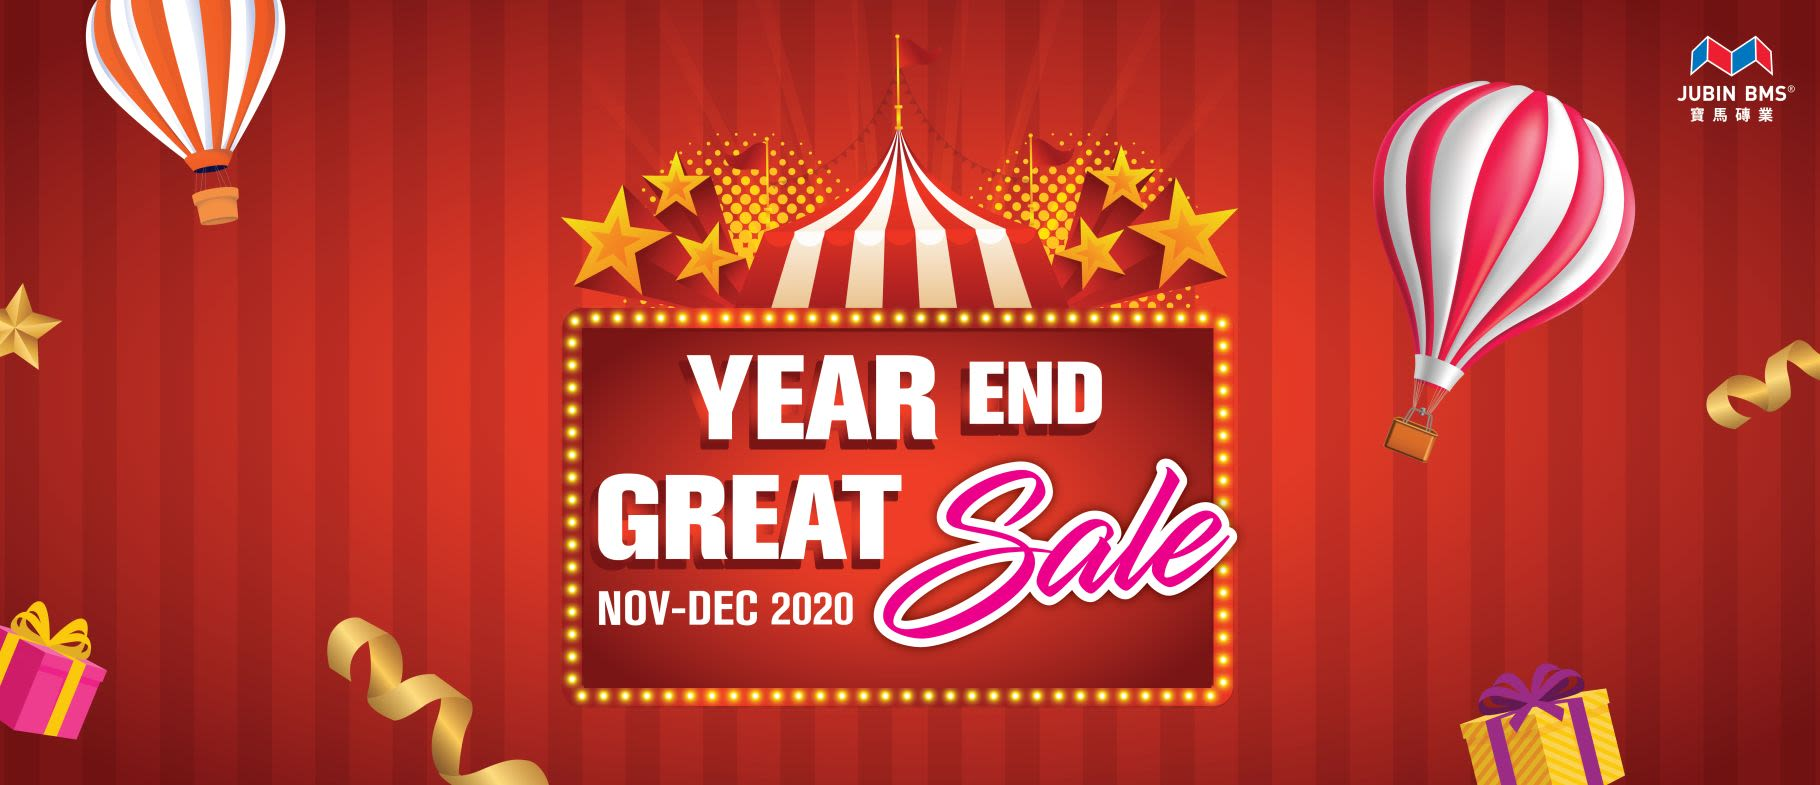 Year End Great Sales